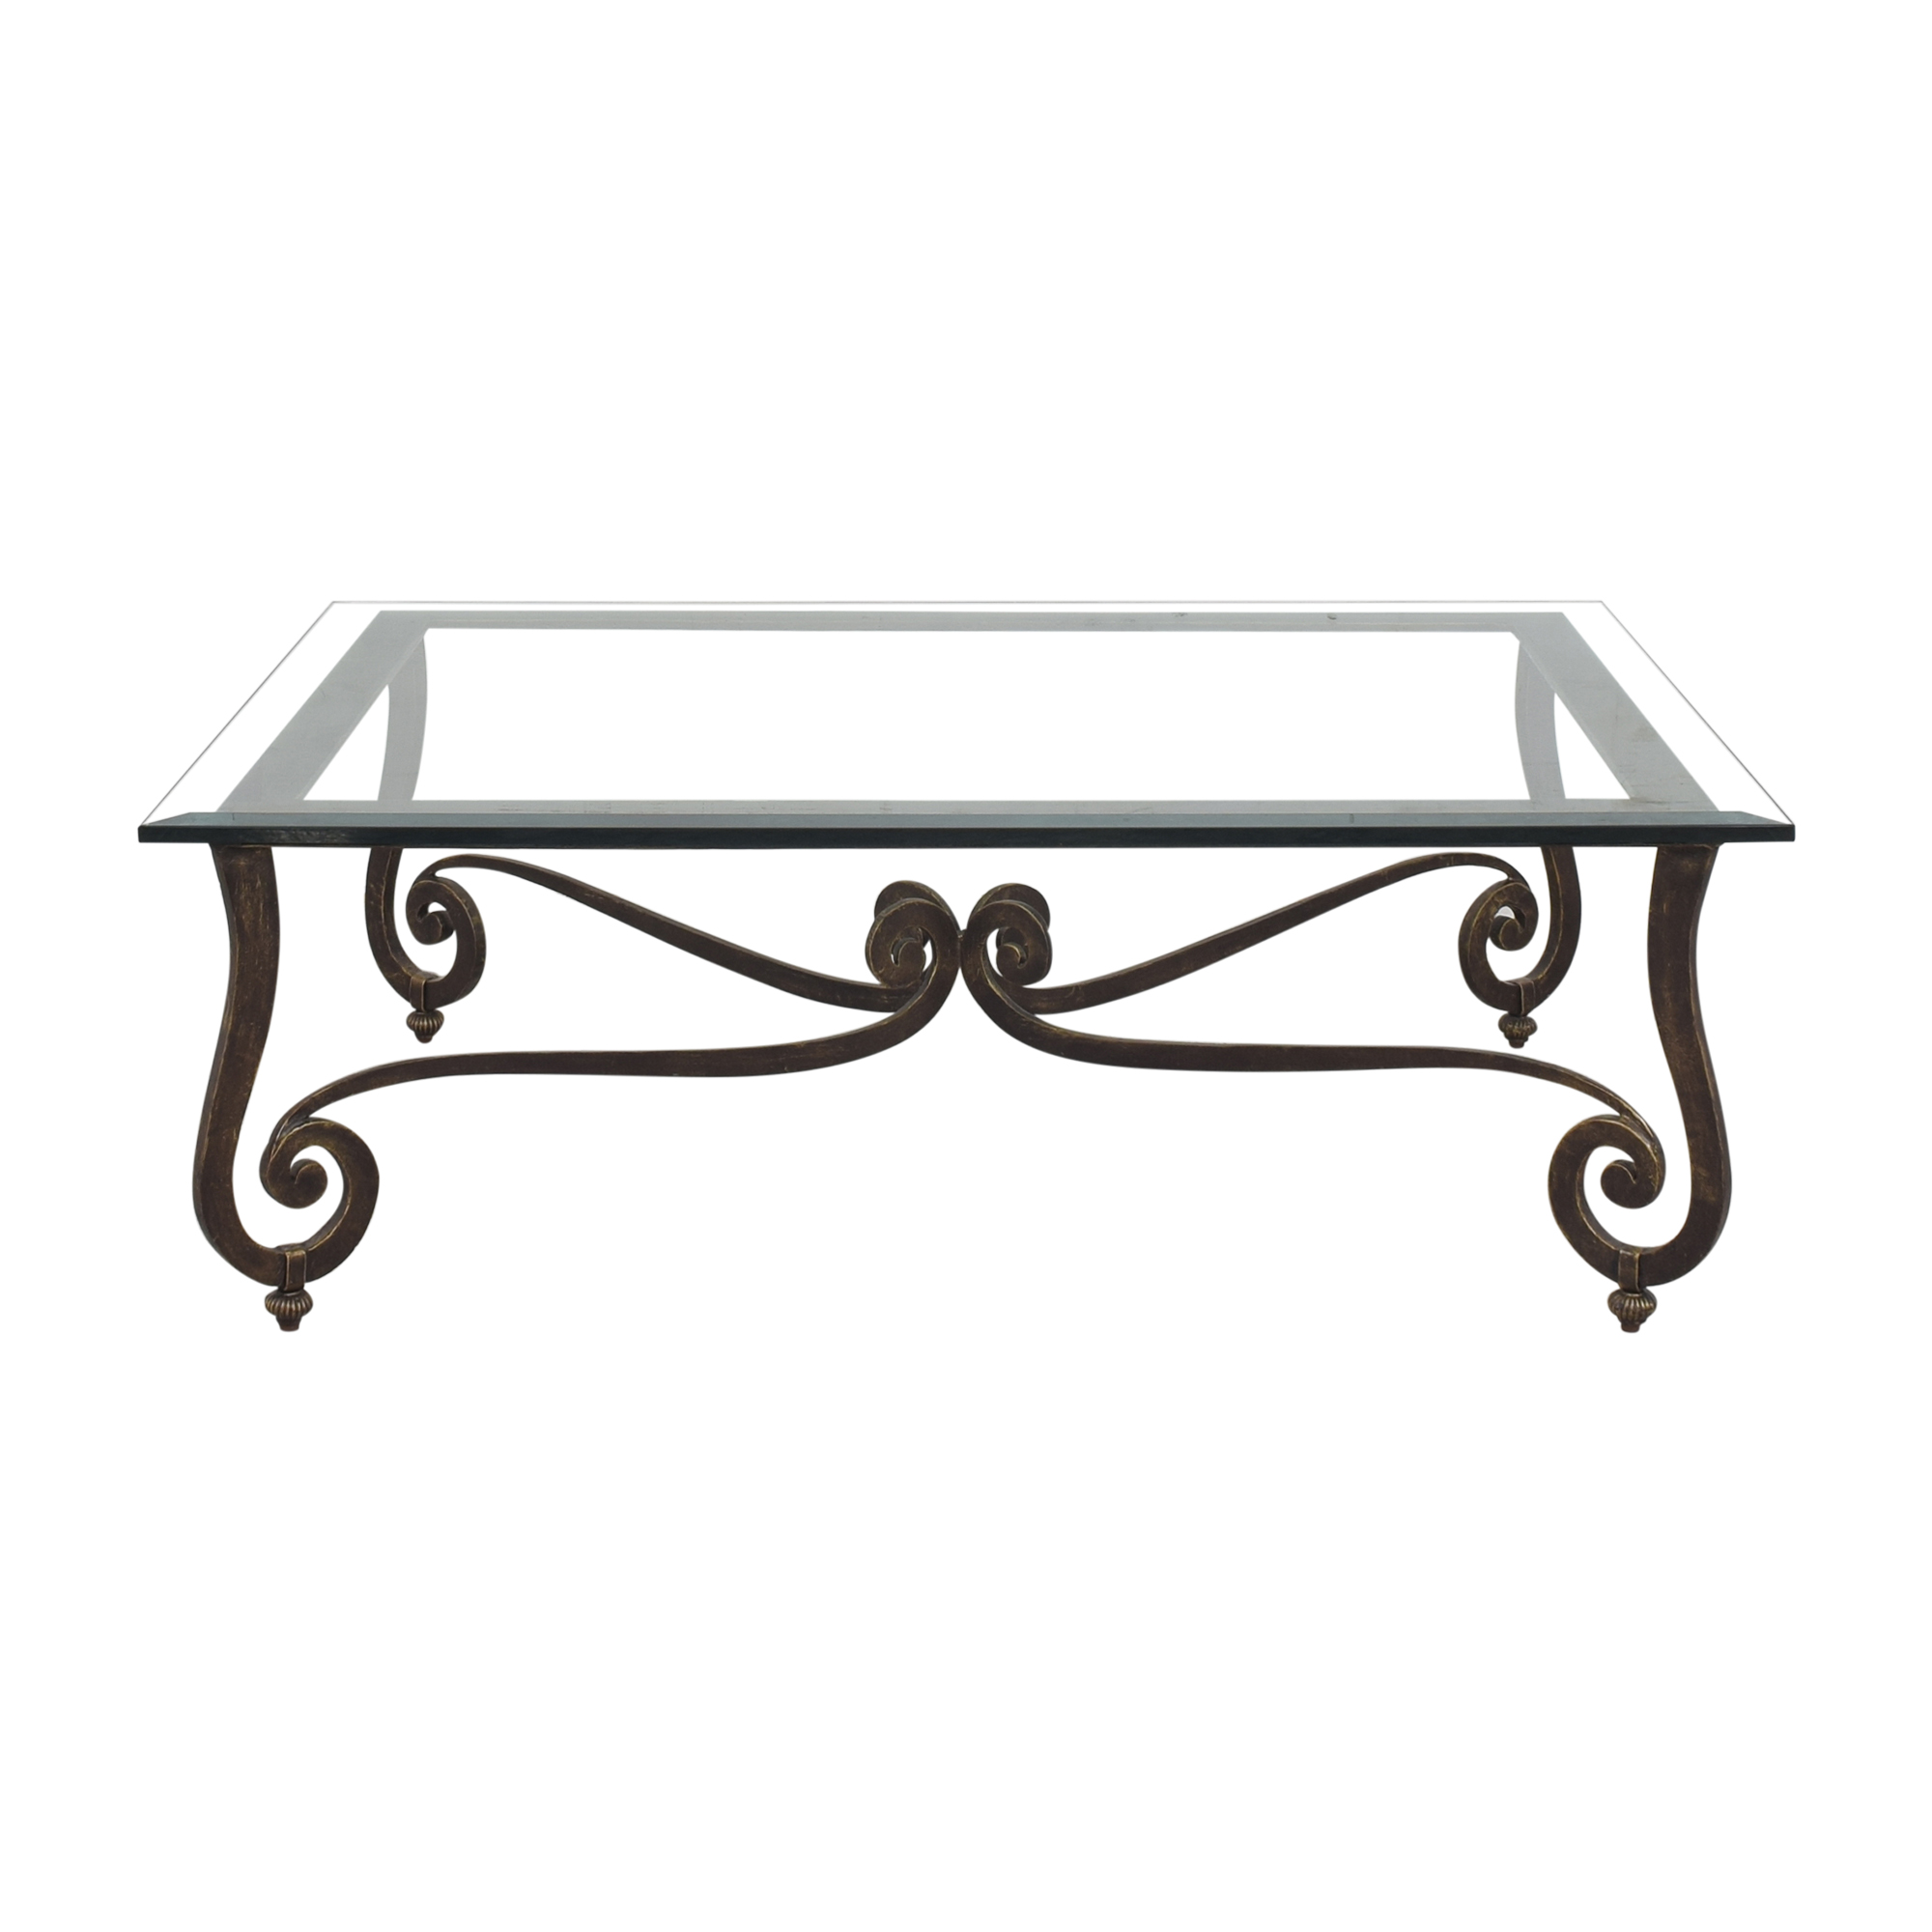 Maurice Villency Maurice Villency Decorative Coffee Table ct